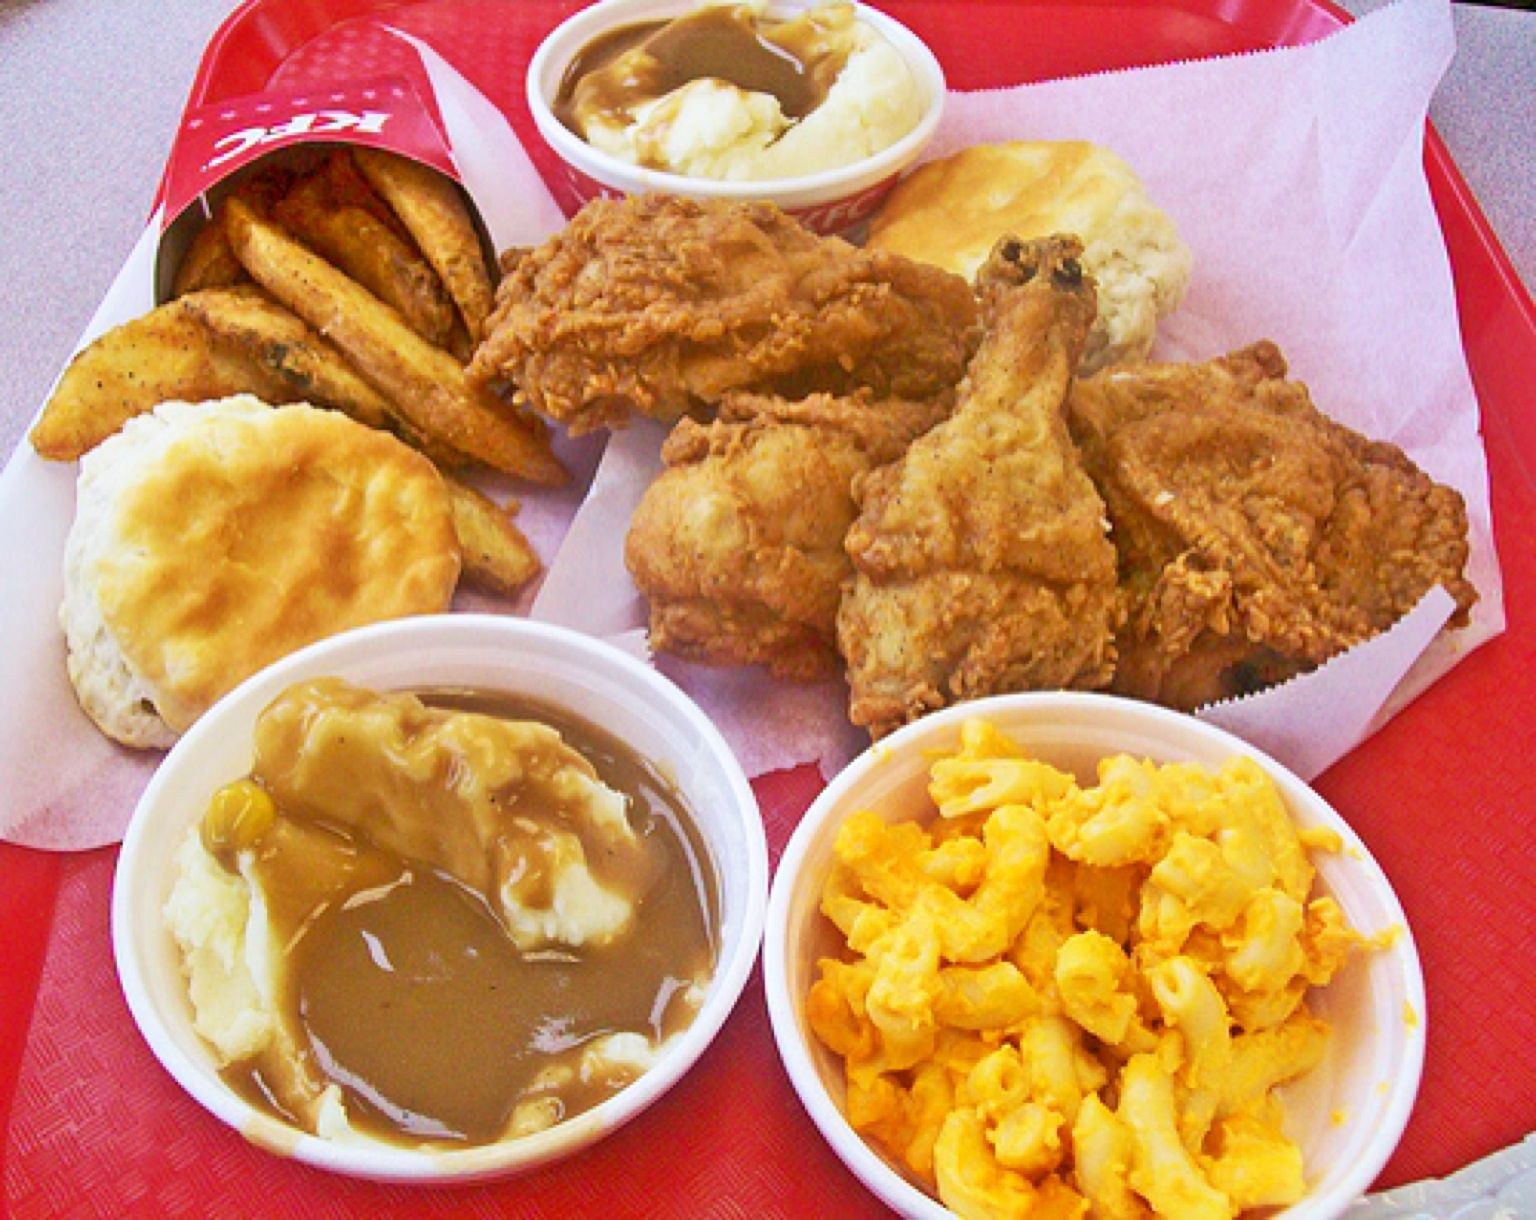 I am so glad because today i am going to eat in kentucky fried foods forumfinder Image collections